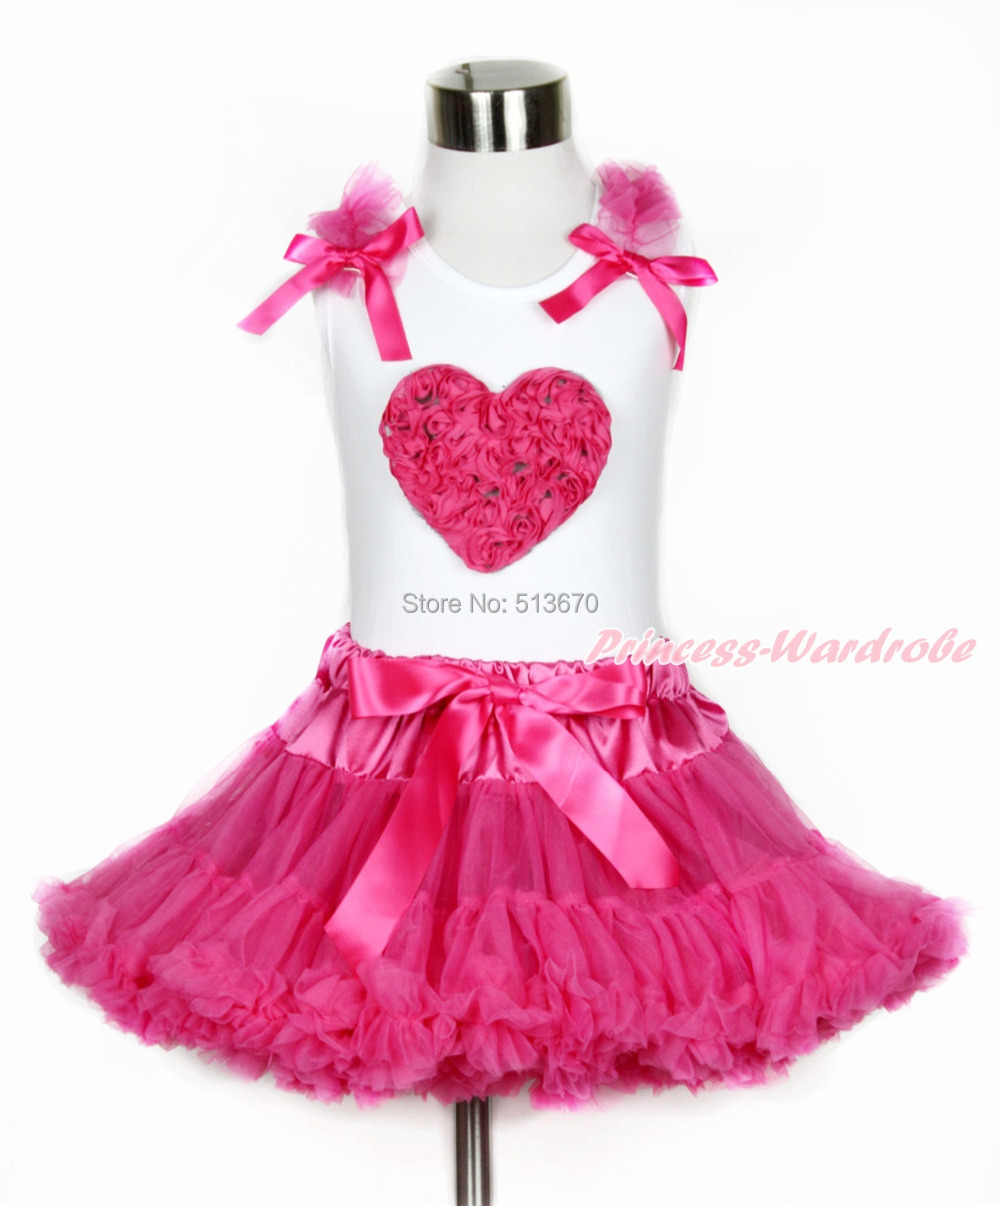 Valentine Hot Pink Romantic Rose Heart White Top Girl Hot Pink Pettiskirt 1-8Y MAPSA0103